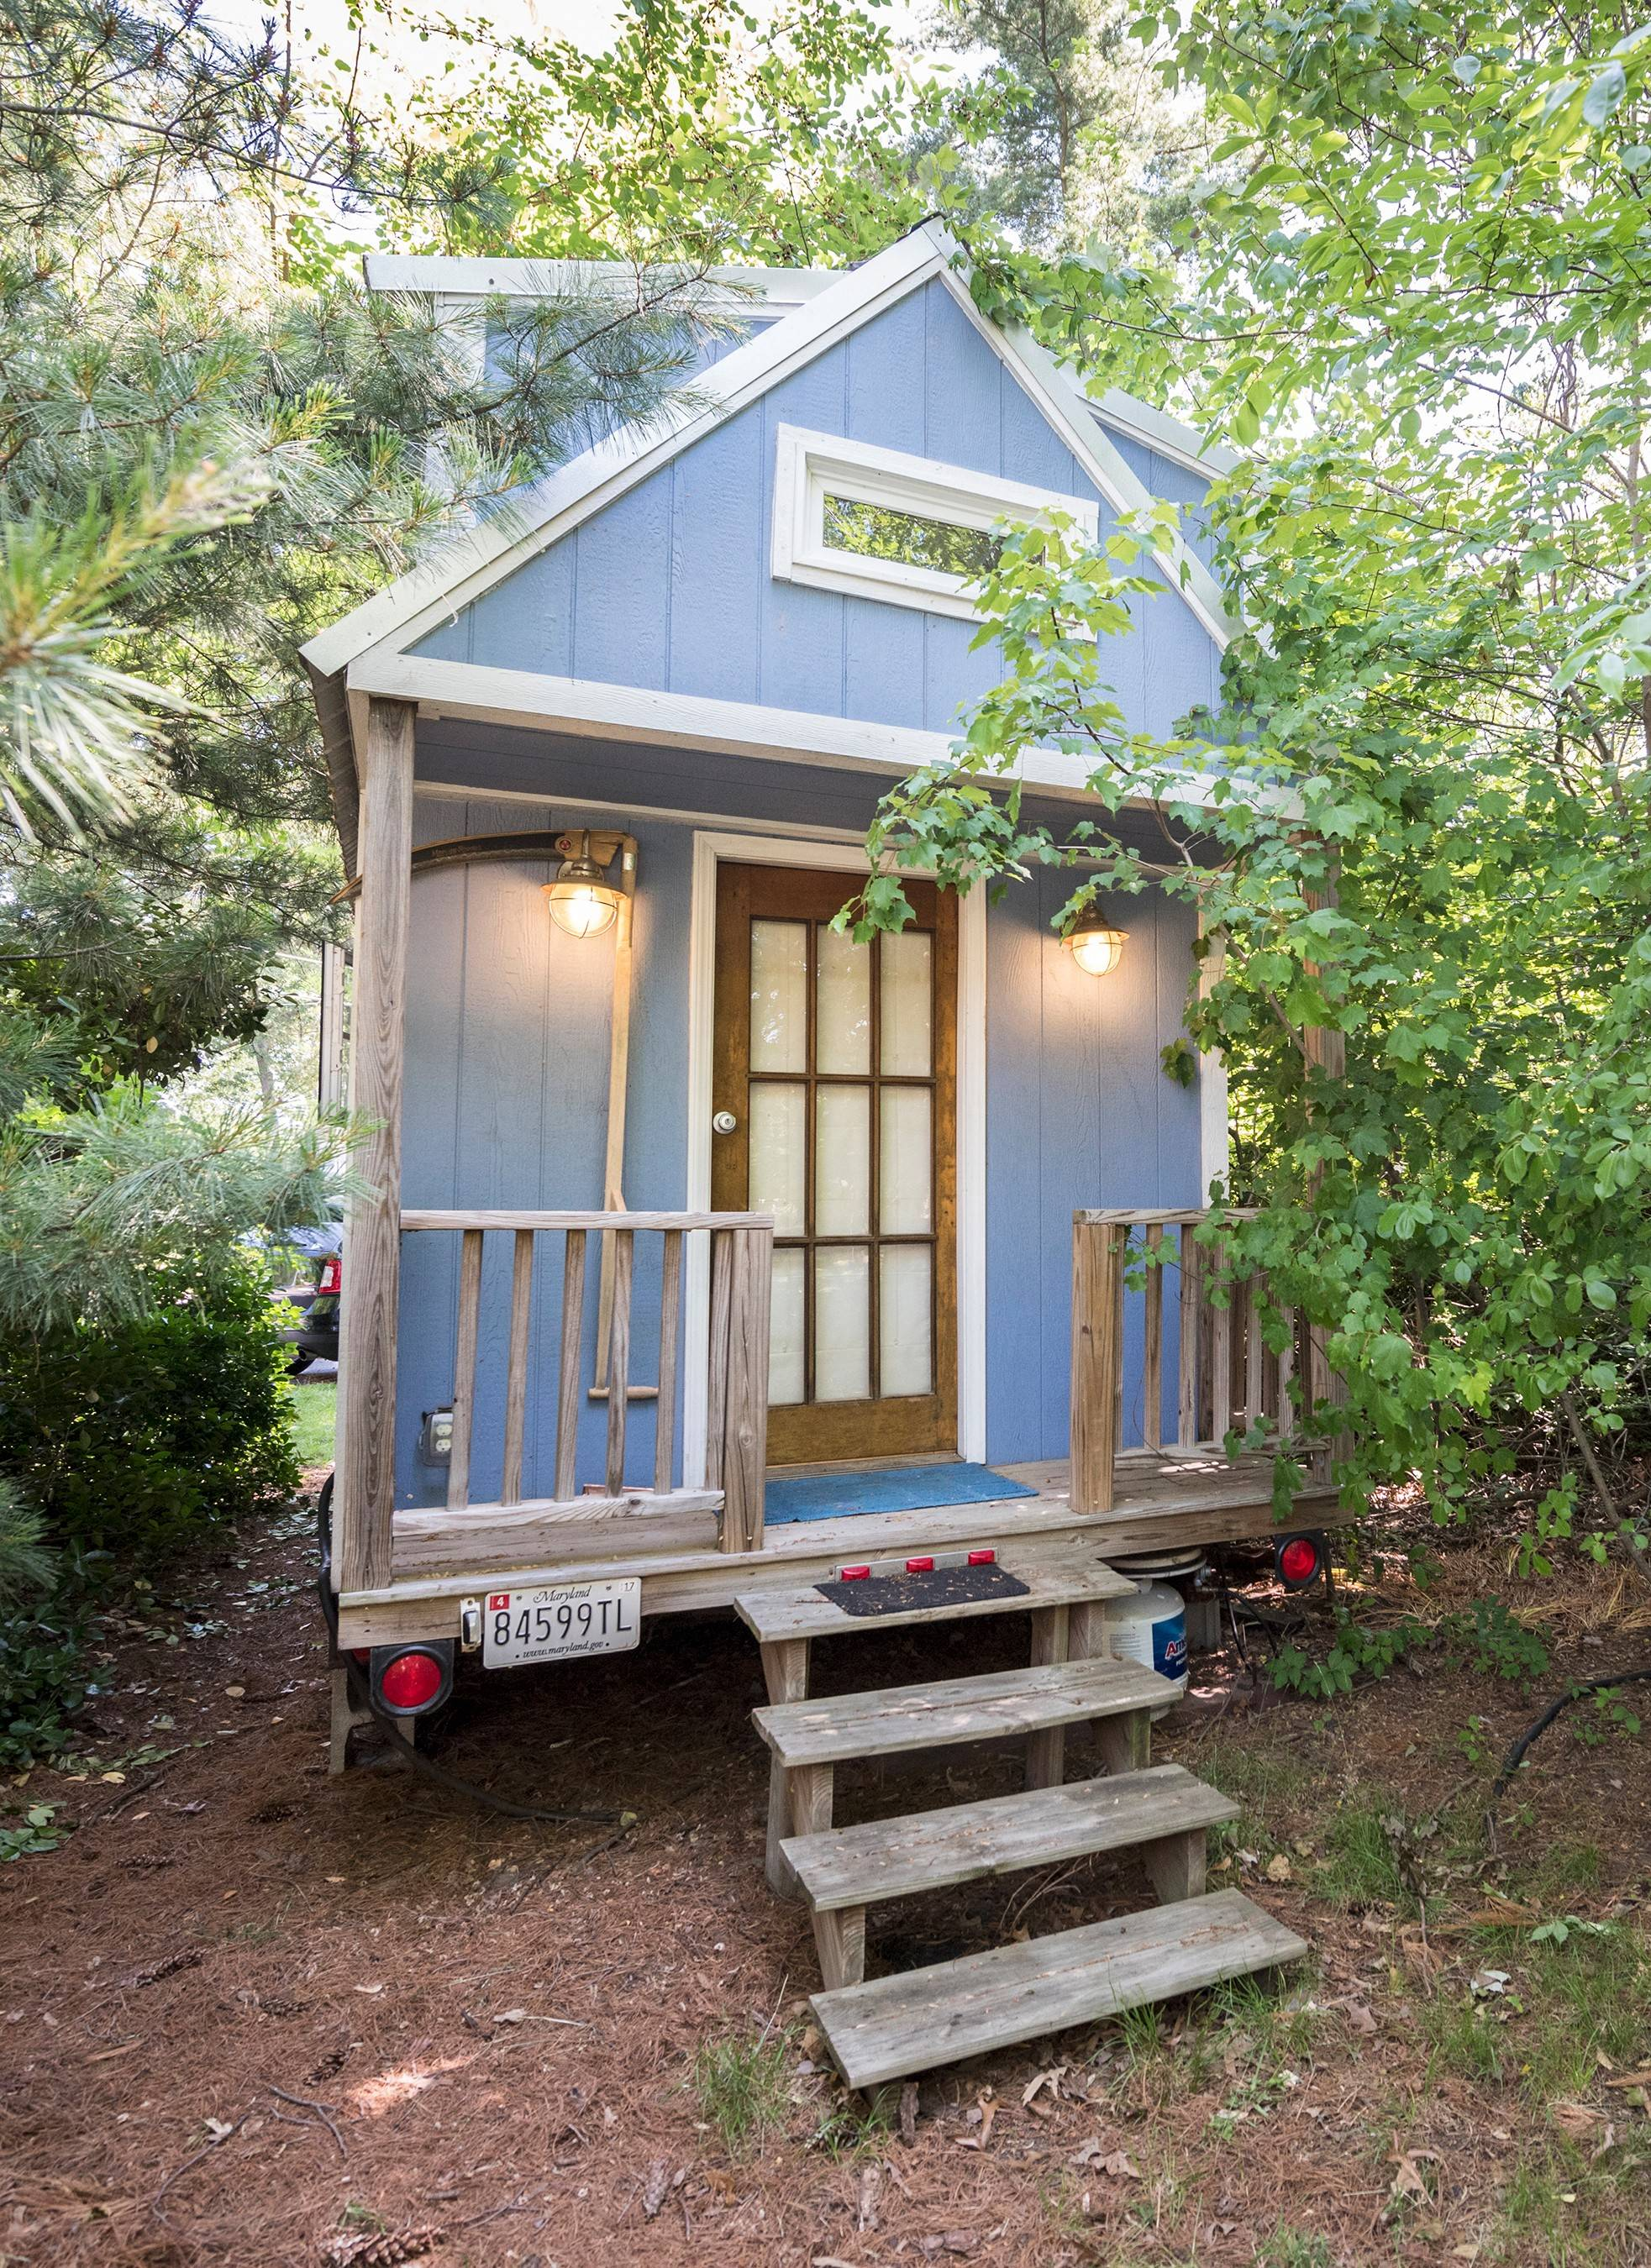 Tiny house big benefits Freedom from a mortgage and stuff